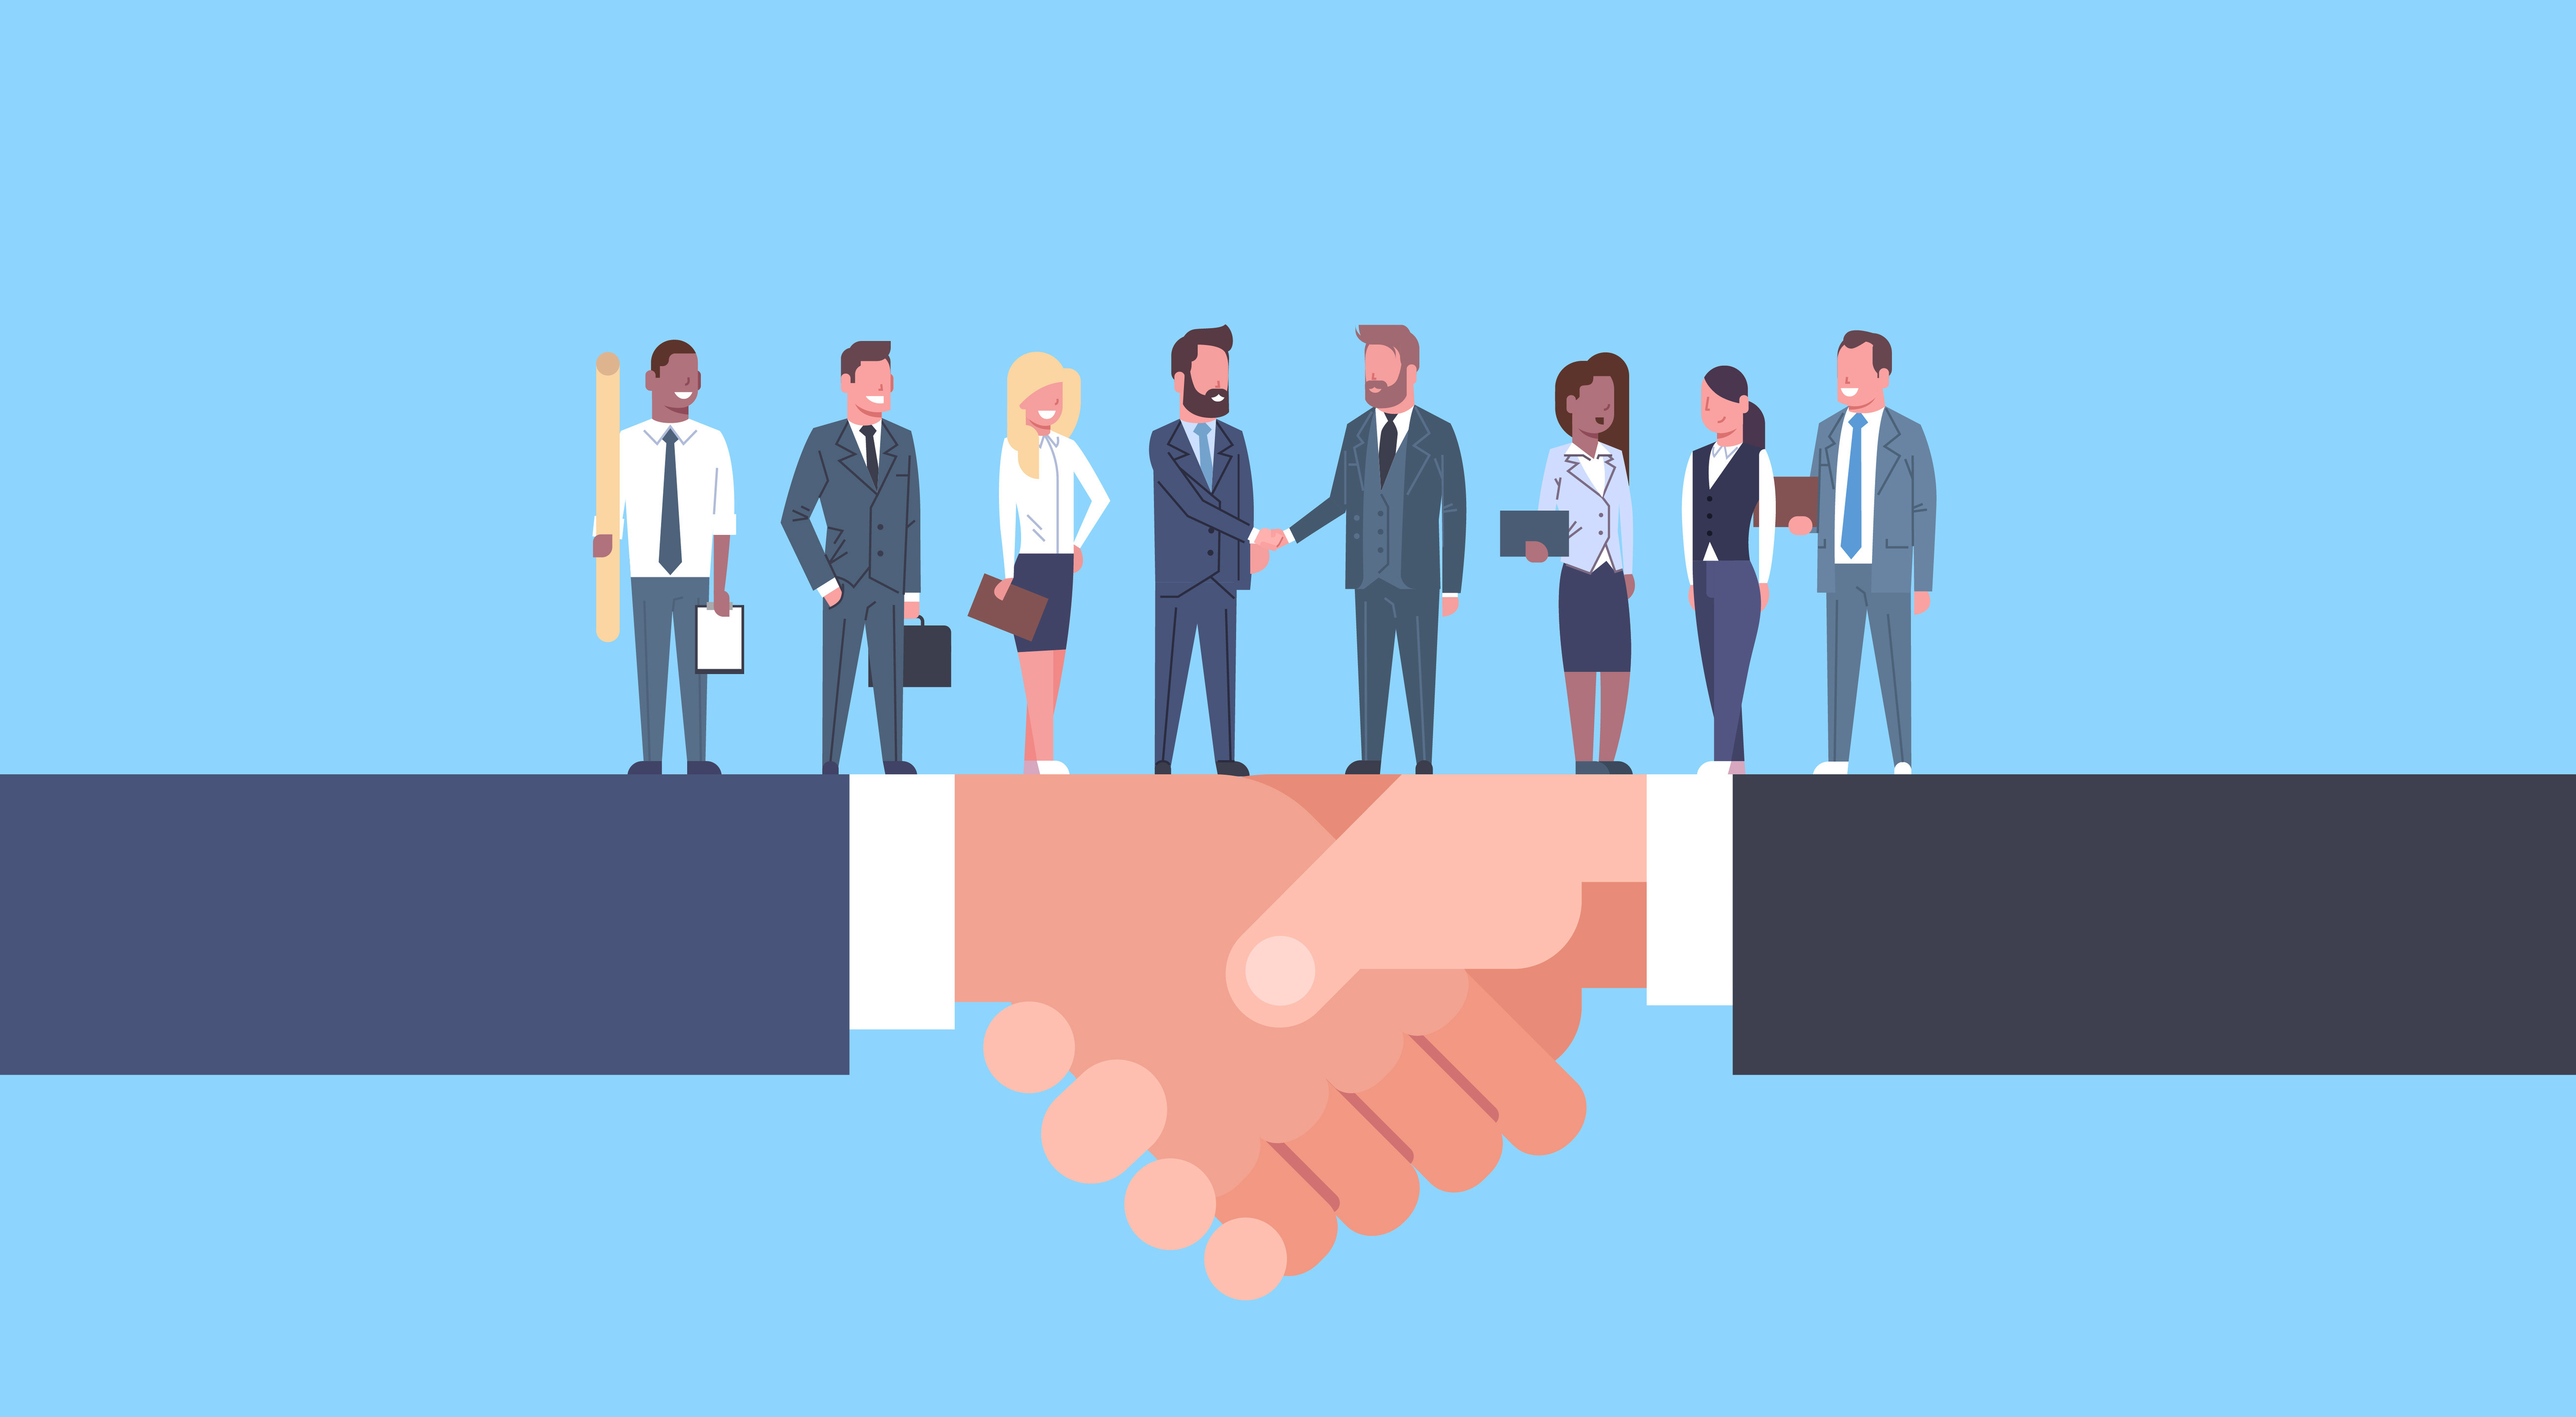 Two Businessmen Shaking Hands With Team Of Businesspeople, Business Agreement And Partnership Concept Flat Vector Illustration Licensed FILE #  196741746  Preview Crop  Find Similar